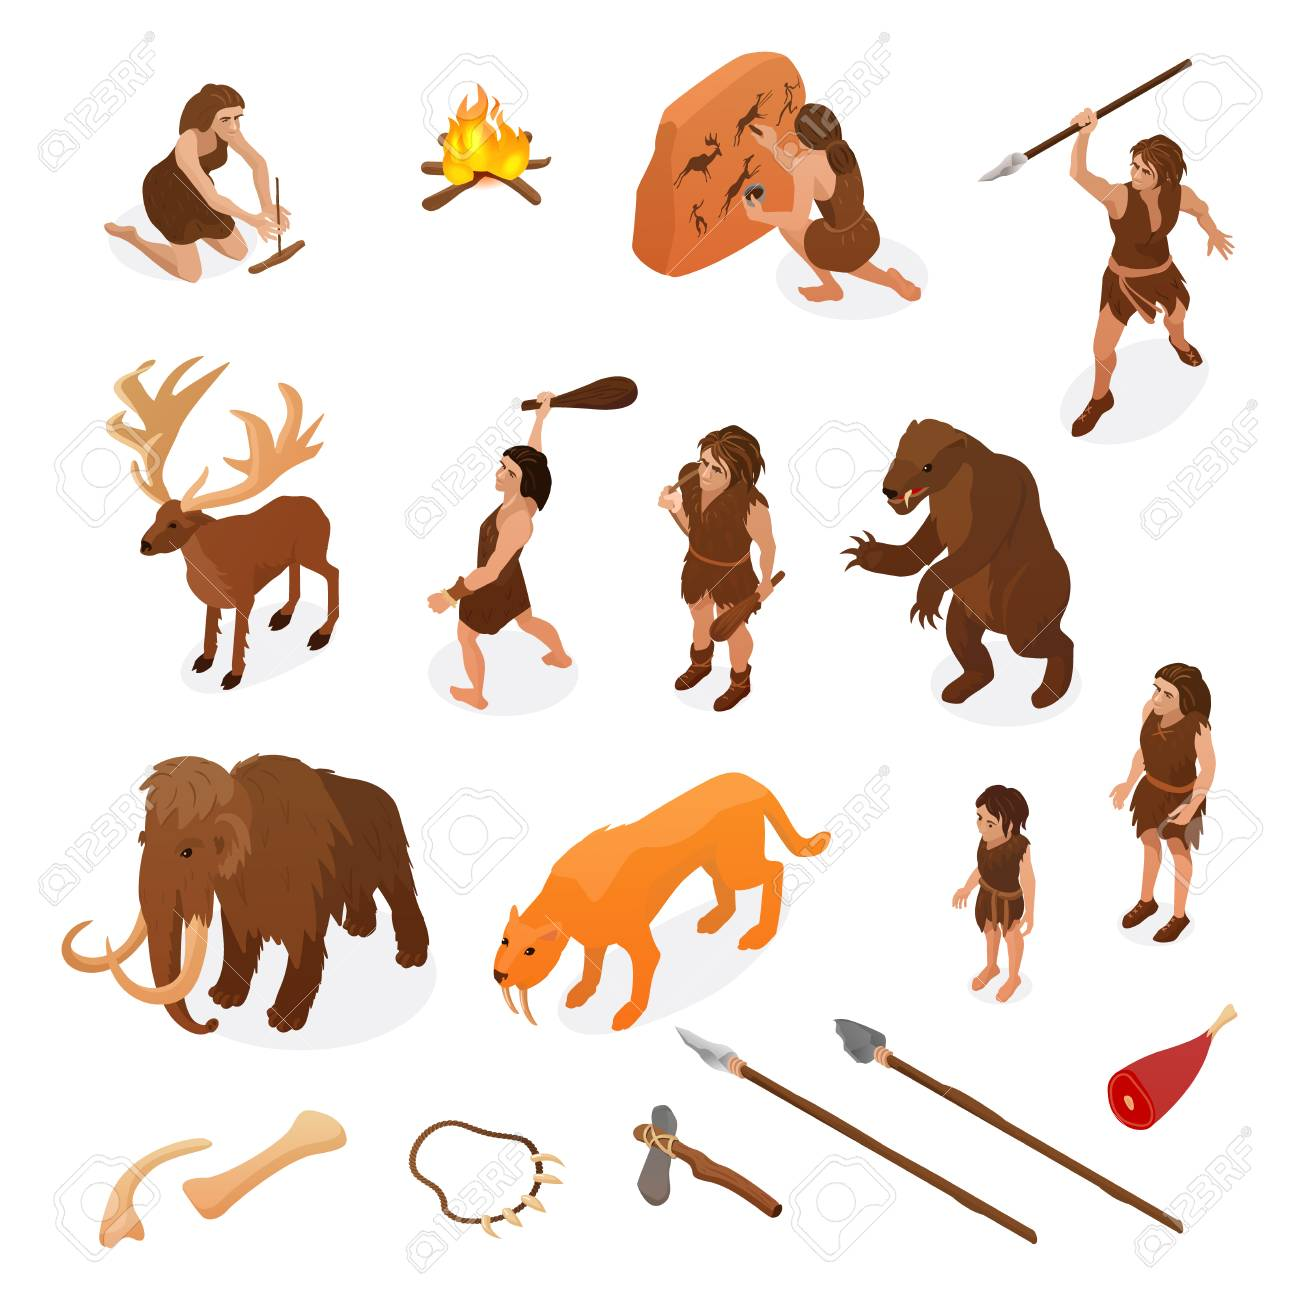 Primitive people life isometric set with hunting weapons starting fire rock painting dinosaur mammoth isolated vector illustration - 113030593